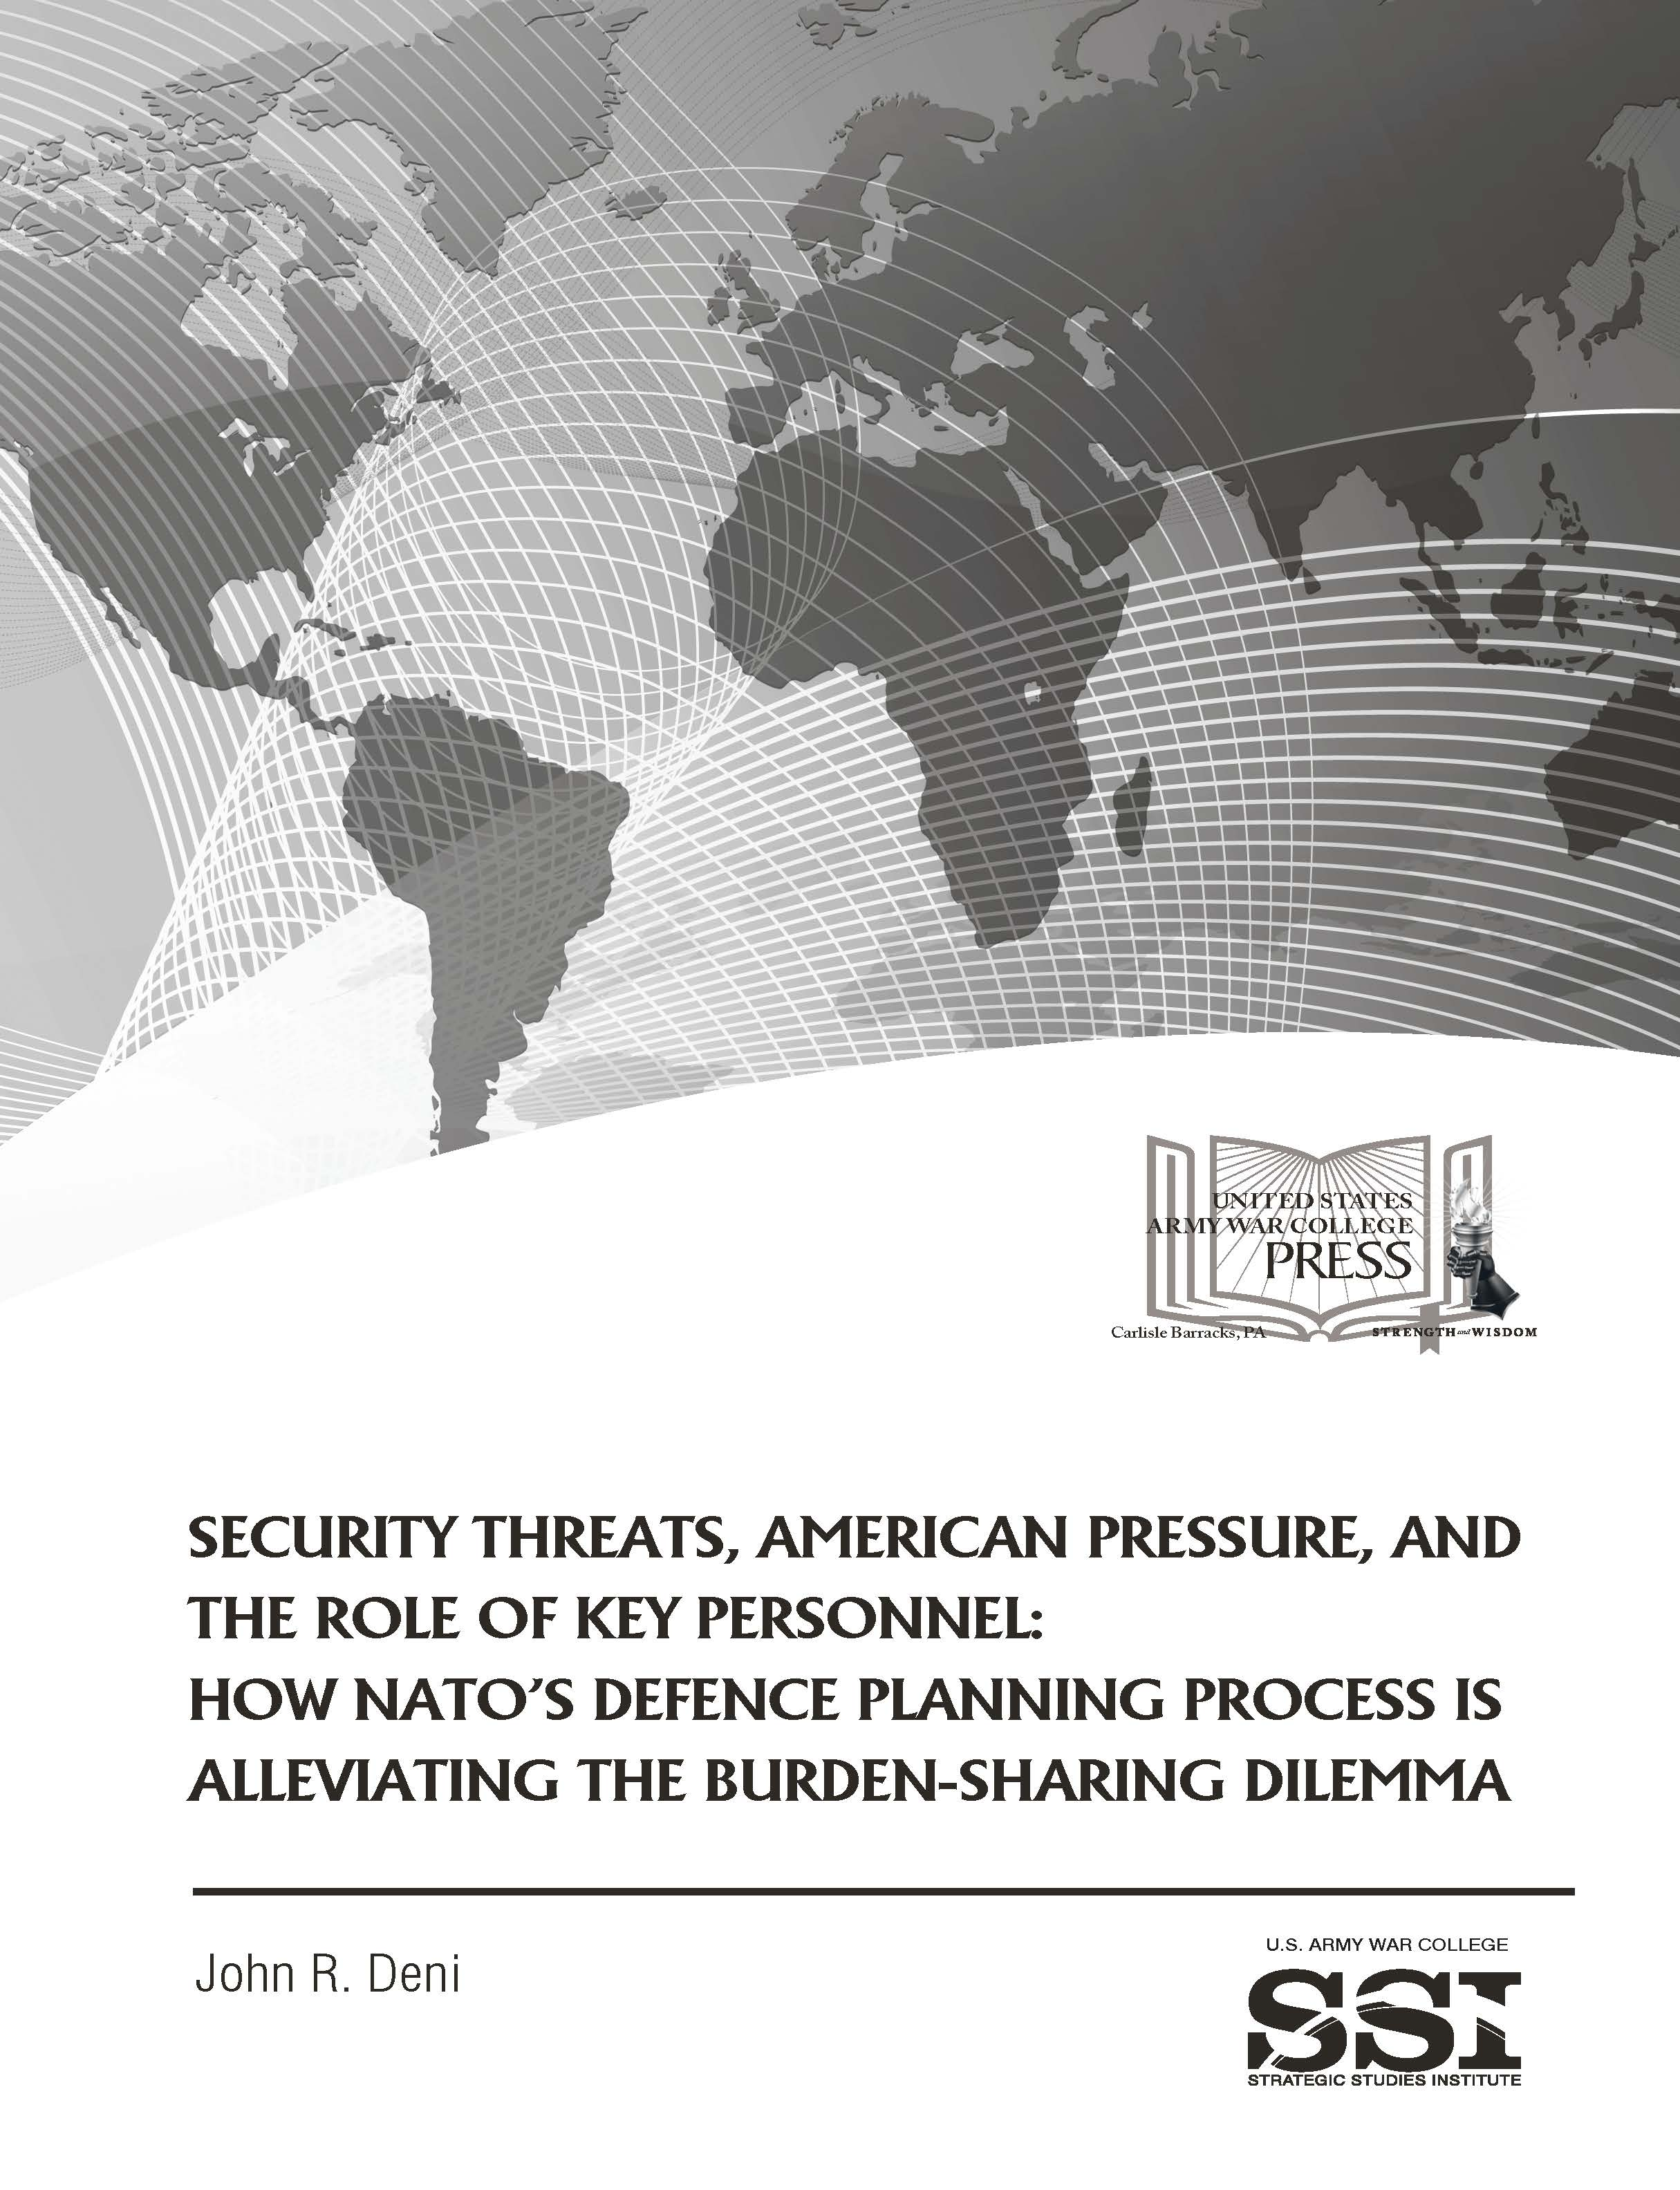 Security Threats, American Pressure, and the Role of Key Personnel: How NATO's Defence Planning Process is Alleviating the Burden-Sharing Dilemma